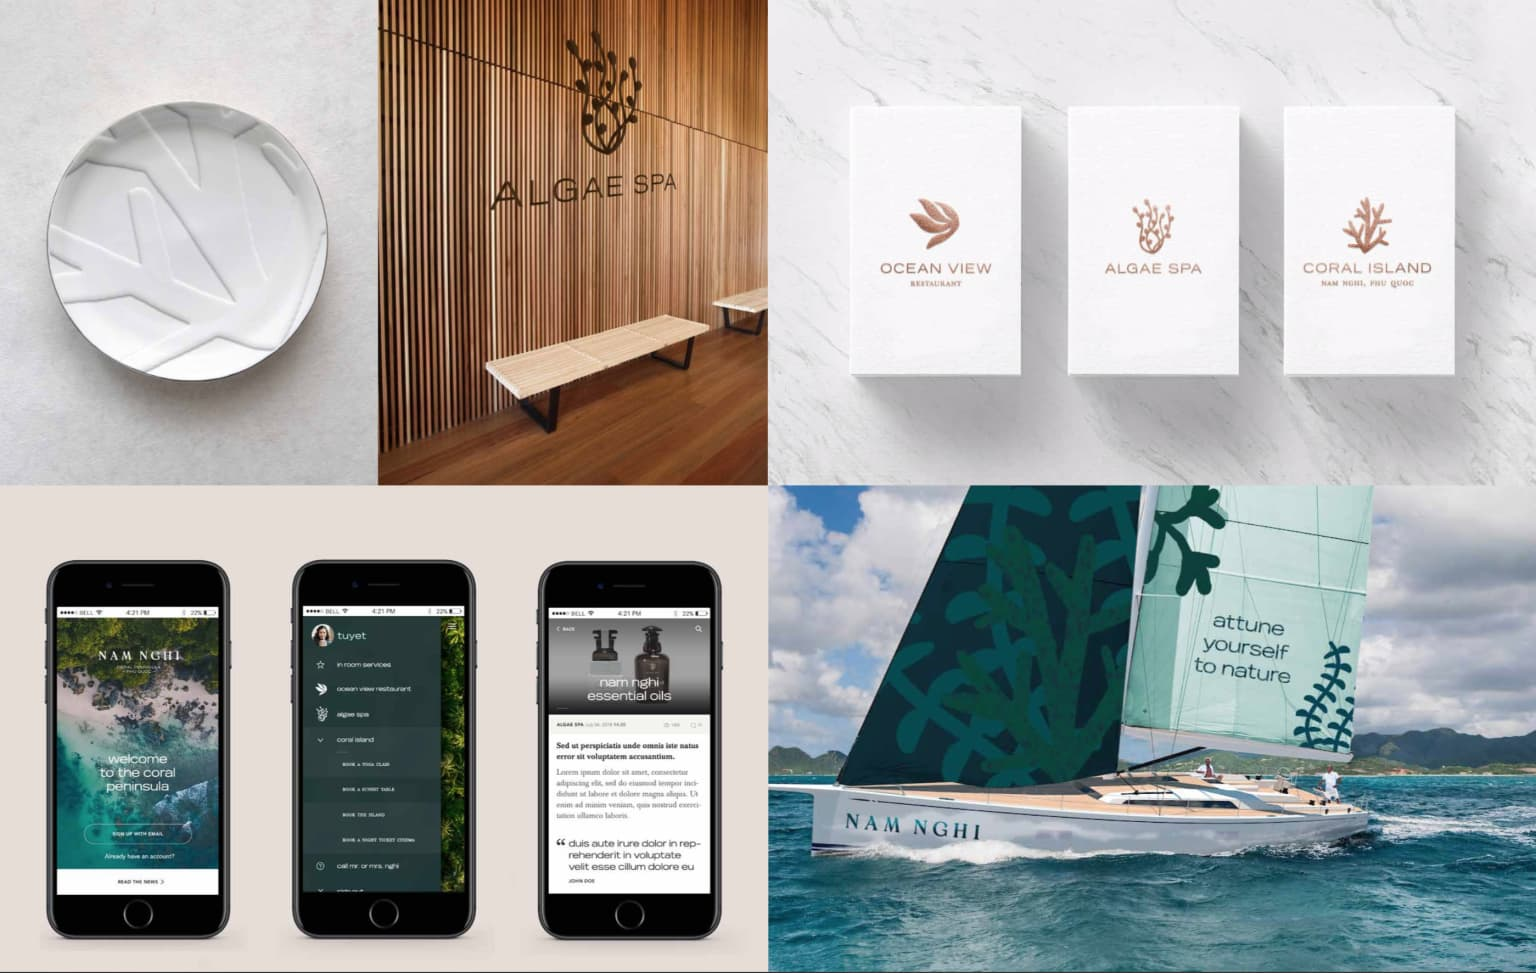 Hyatt — Developing a compelling brand story for Nam Nghi